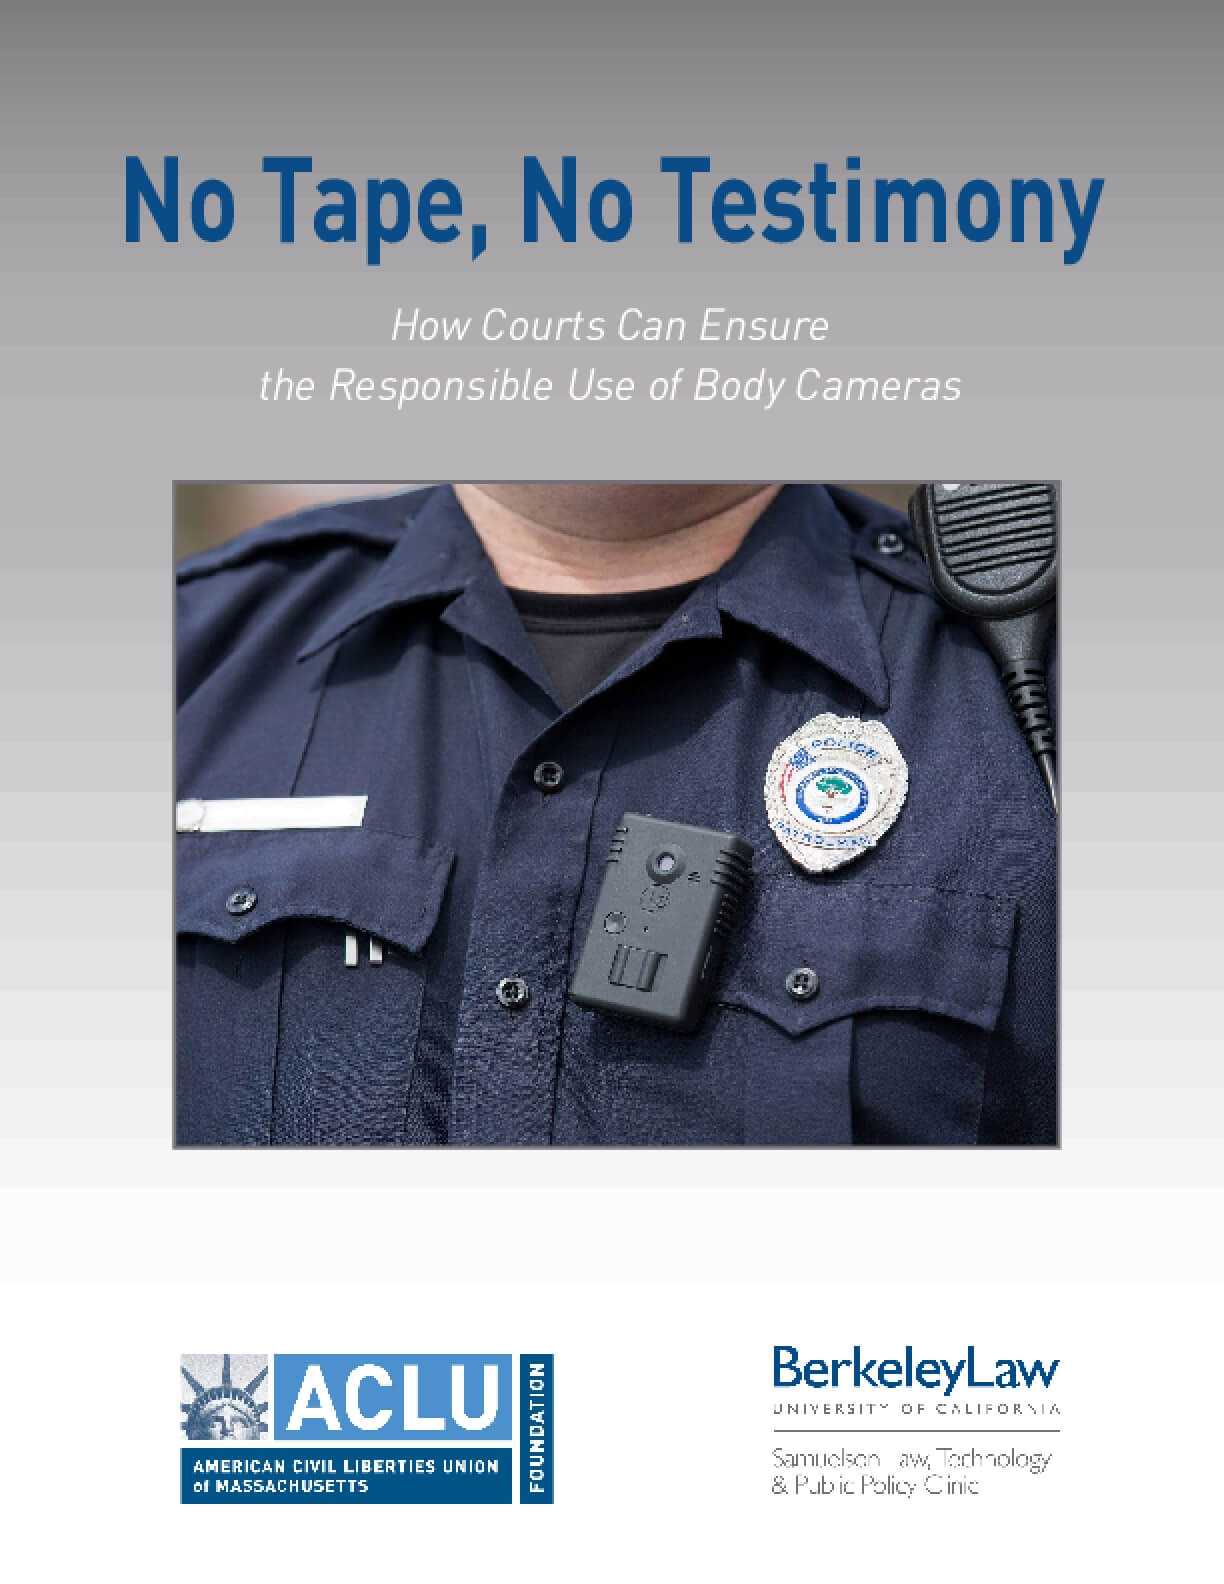 No Tape, No Testimony: How Courts Can Ensure the Responsible Use of Body Cameras